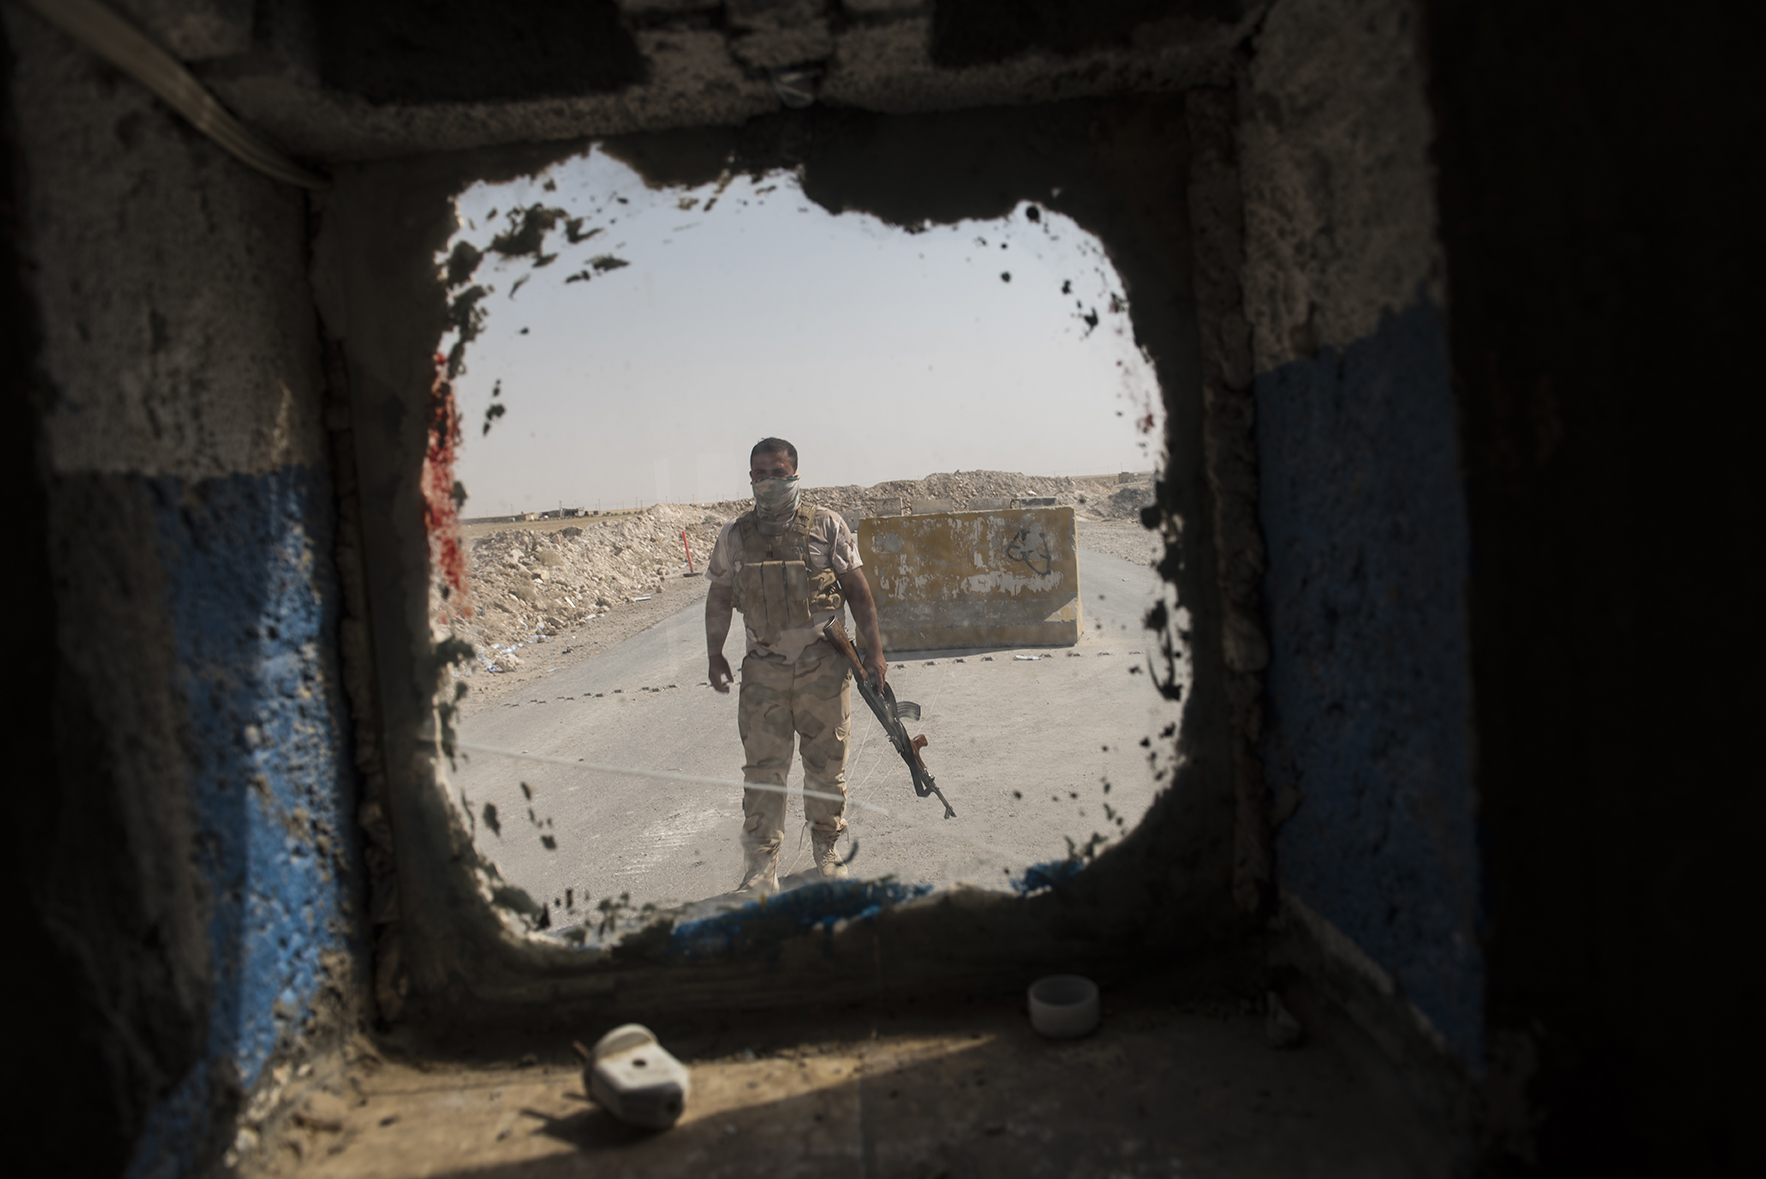 A Kurdish stands guard at a checkpoint  at the edge of the largely abandoned frontline village of Mahmur, where fighters with the Islamic State are estimated by the local Peshmega commander to be as close as 3 miles away, in Northern Iraq, August 15, 2014. Since IS started making its way across Iraq, and overrunning various towns, hundreds of thousands of Iraqis have been displaced across the country. Mahmur fell to the Islamic State less than two weeks prior, and after the aid of American air strikes, is now back in the hands of the Peshmerga.  Most civilians are gone, and those who remain are vigilant for the potential return of IS fighters at any moment. civilian population is all but gone.